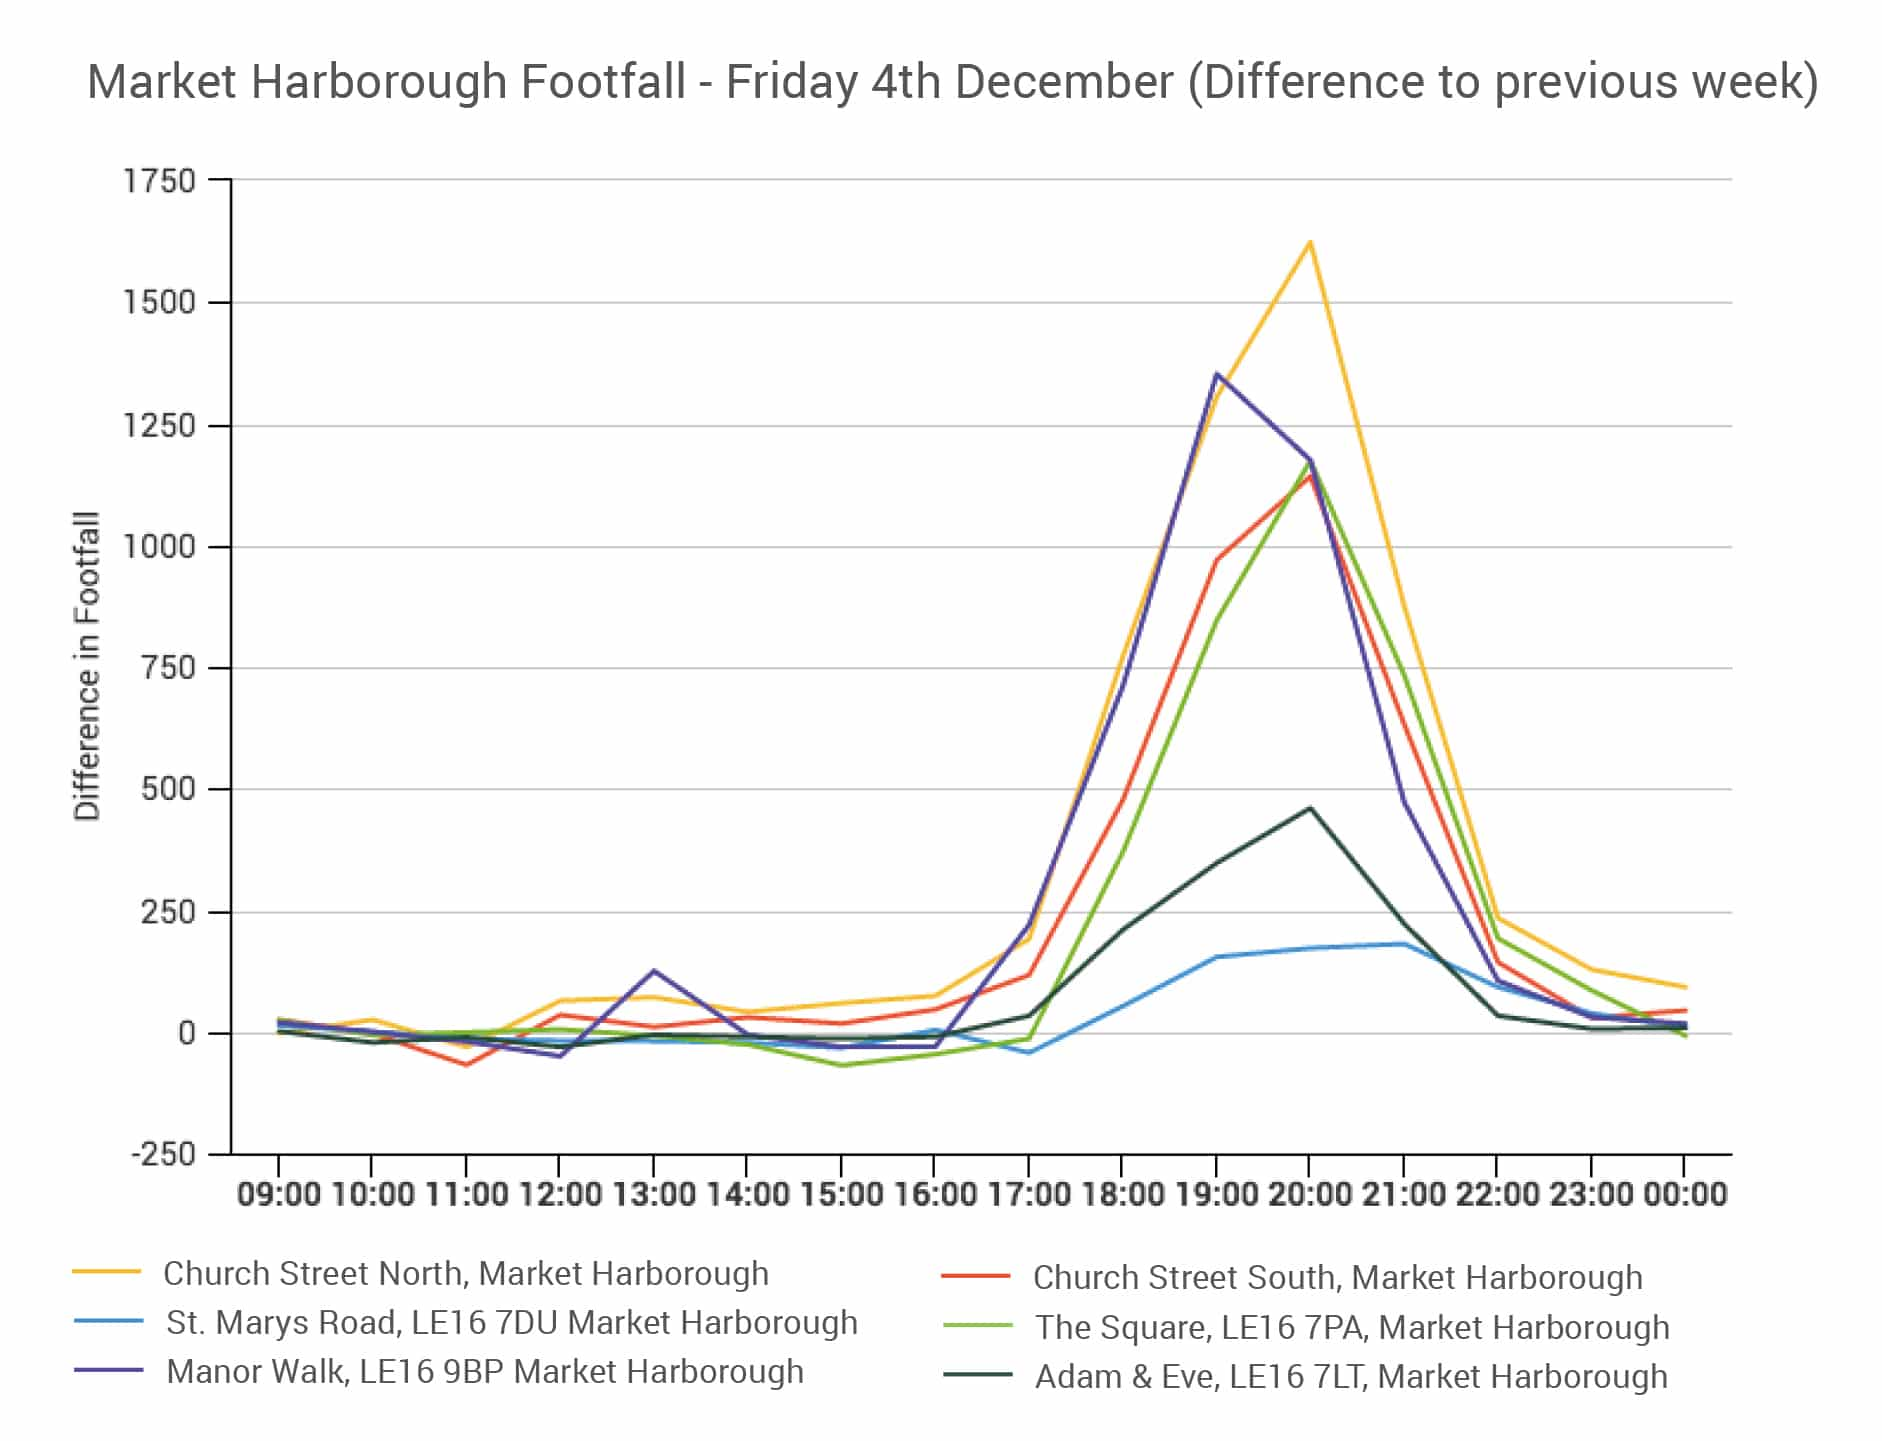 Source: Hourly counts from 6 LDC devices spread across key streets in the town, Fri 27th Nov & Fri 4th Dec 2015.